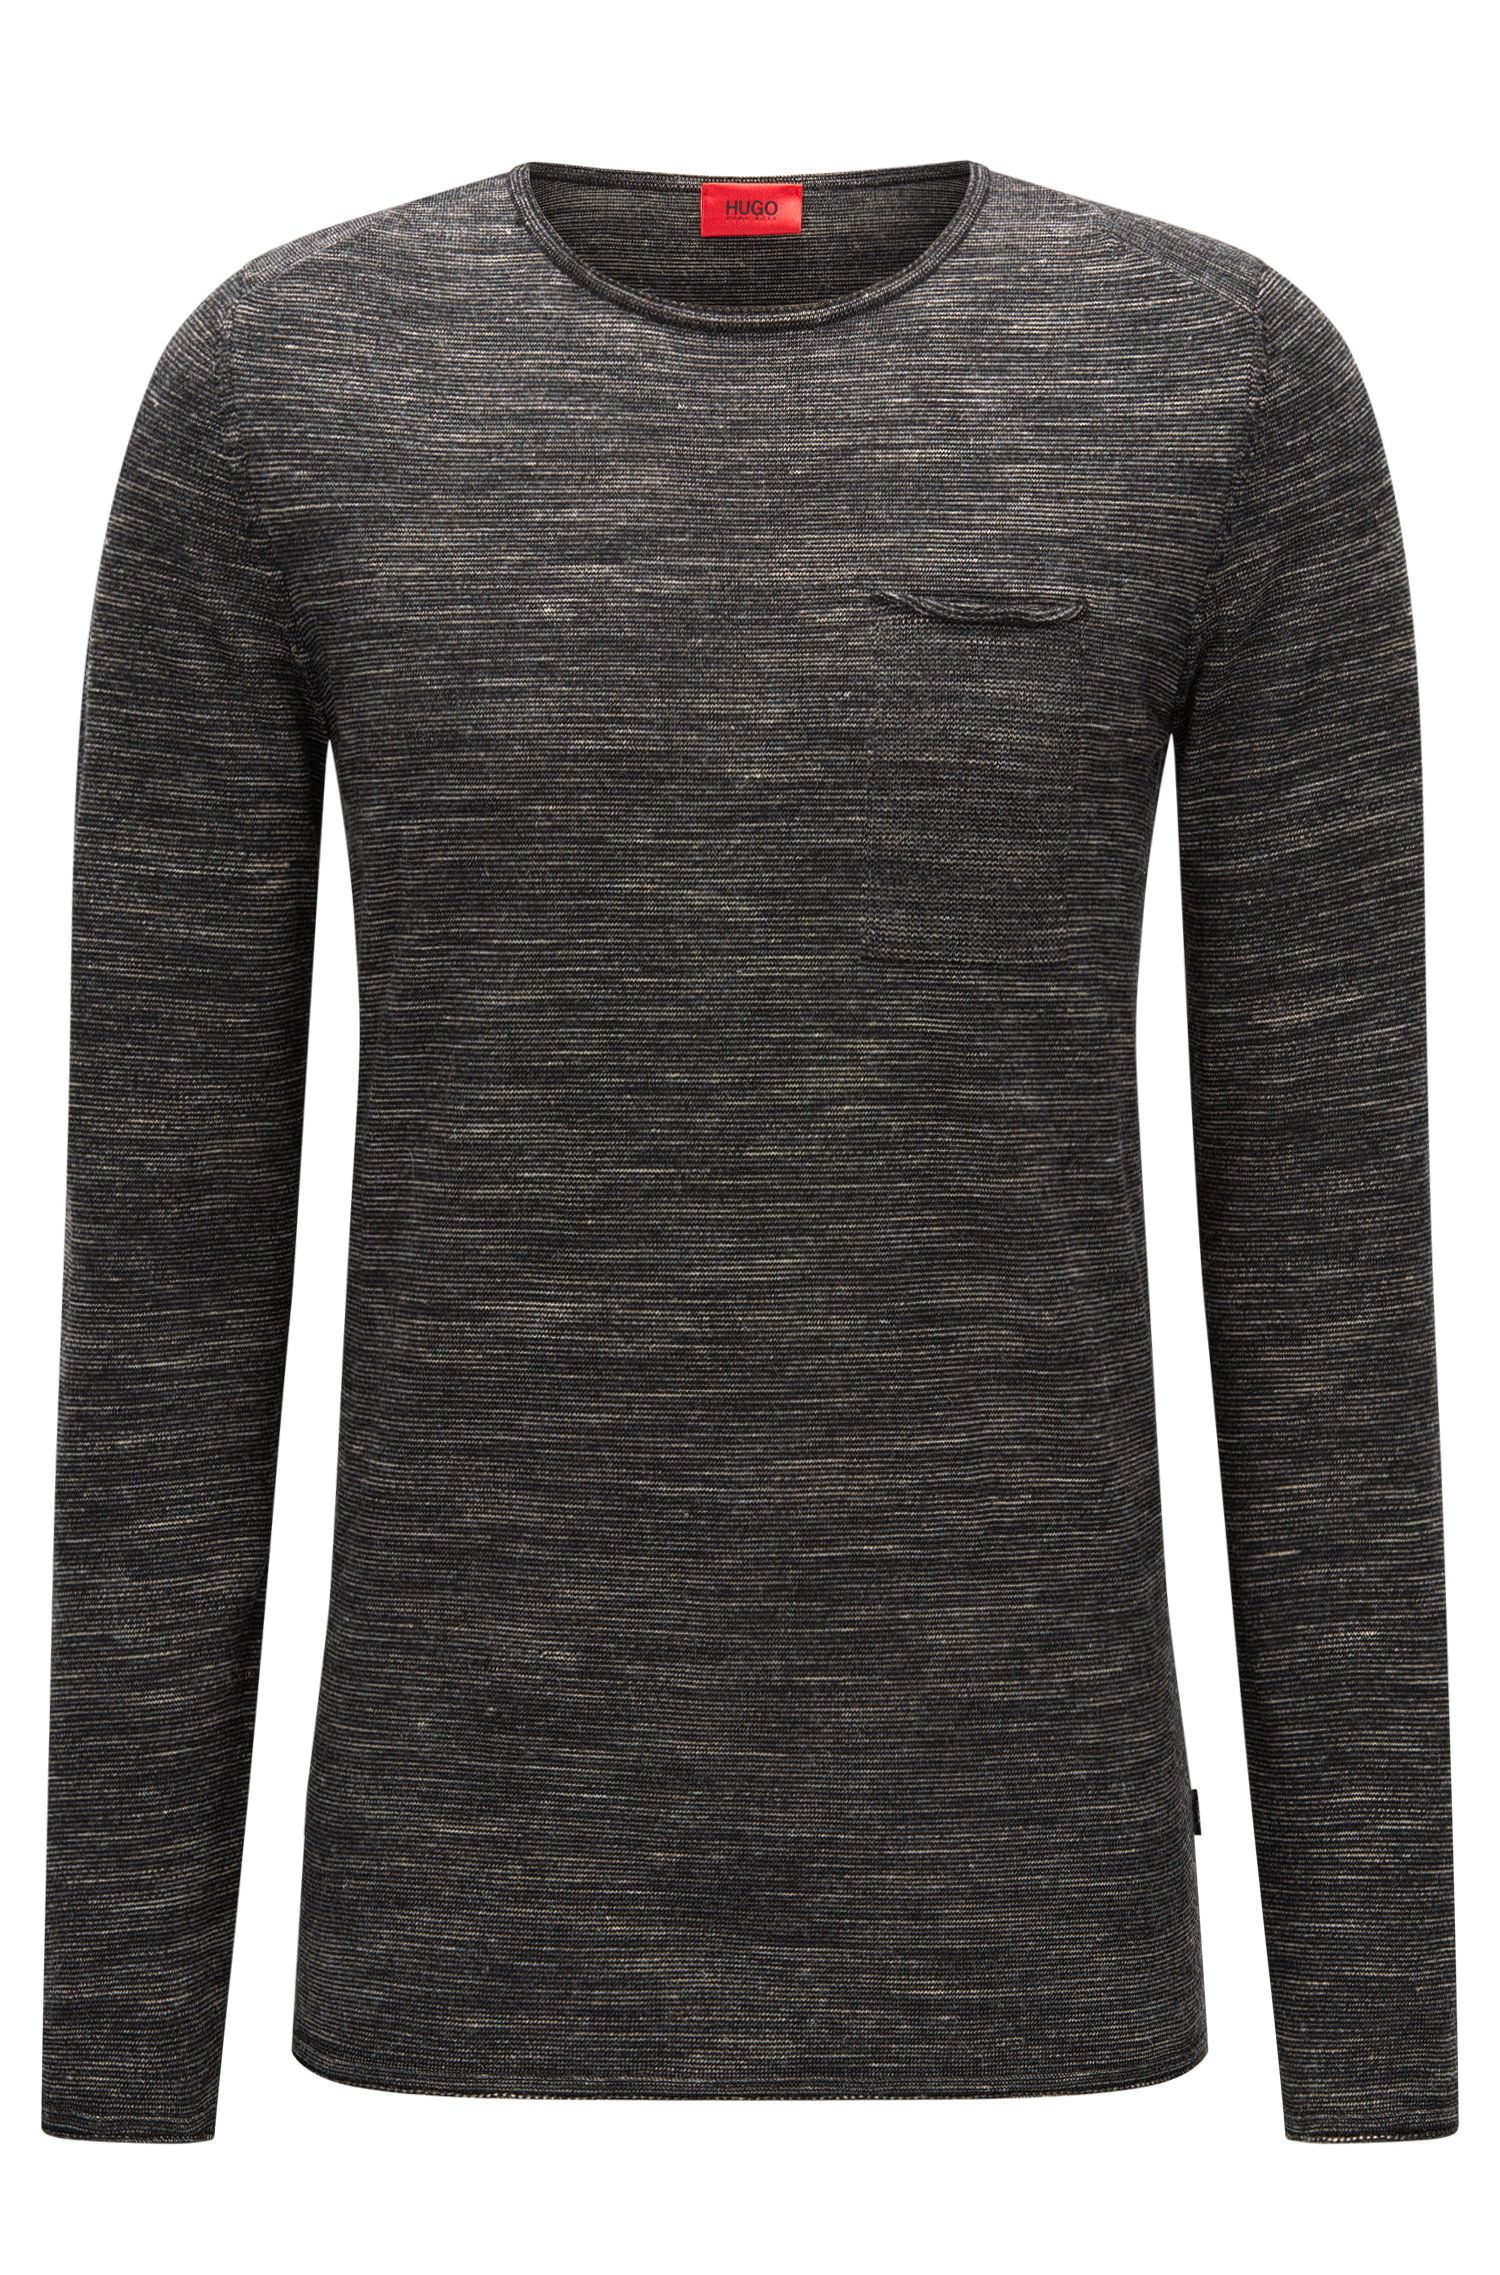 Crew-neck wool blend sweater with rolled edges